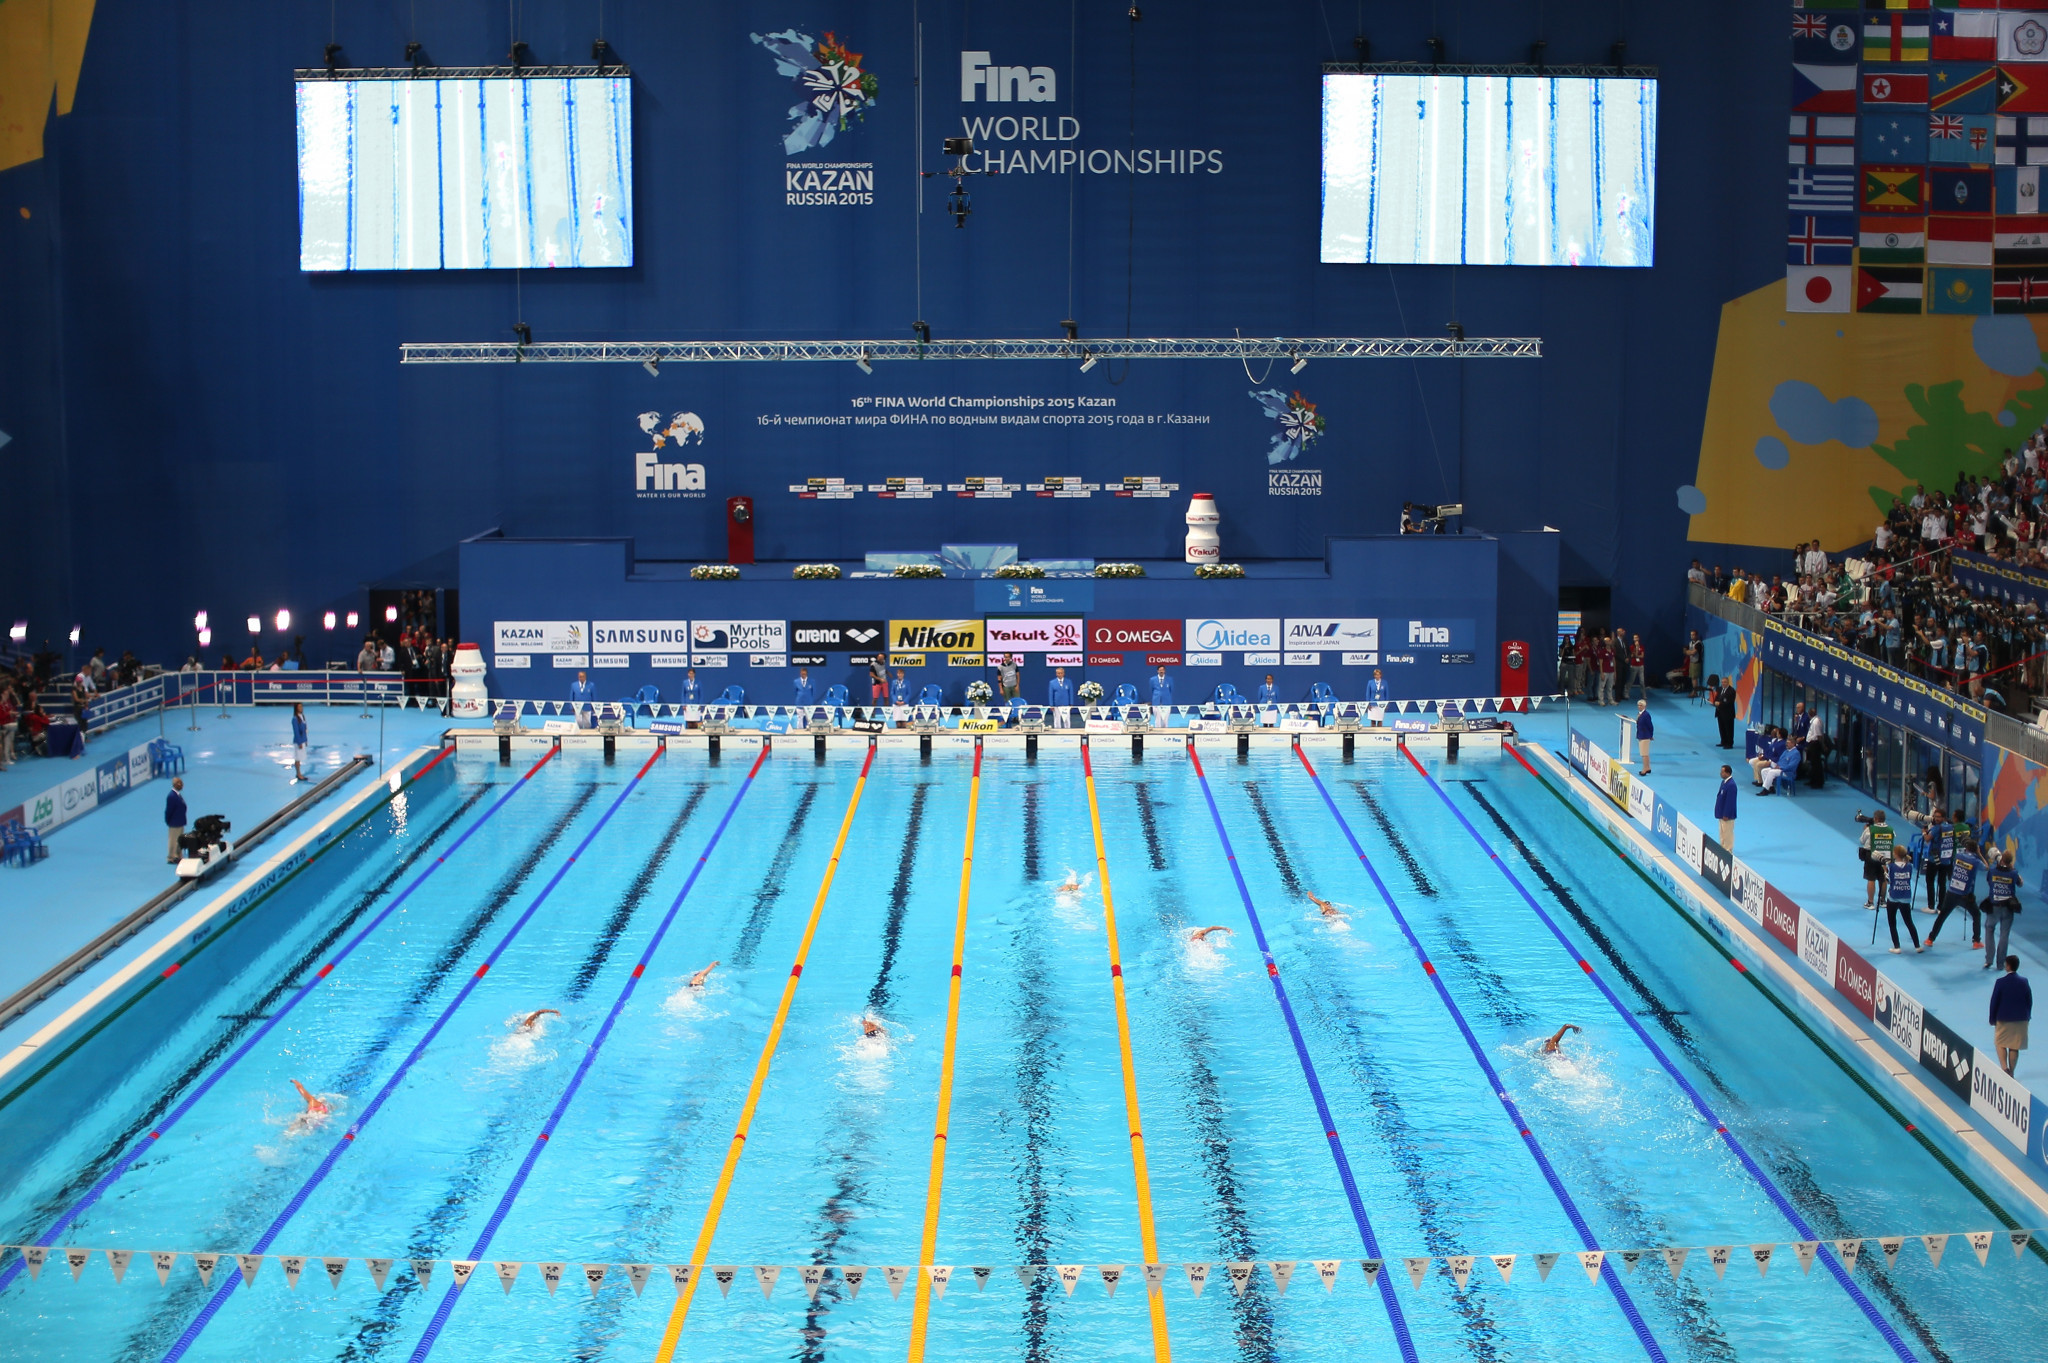 Kazan hosted the 2015 FINA World Championships ©Getty Images